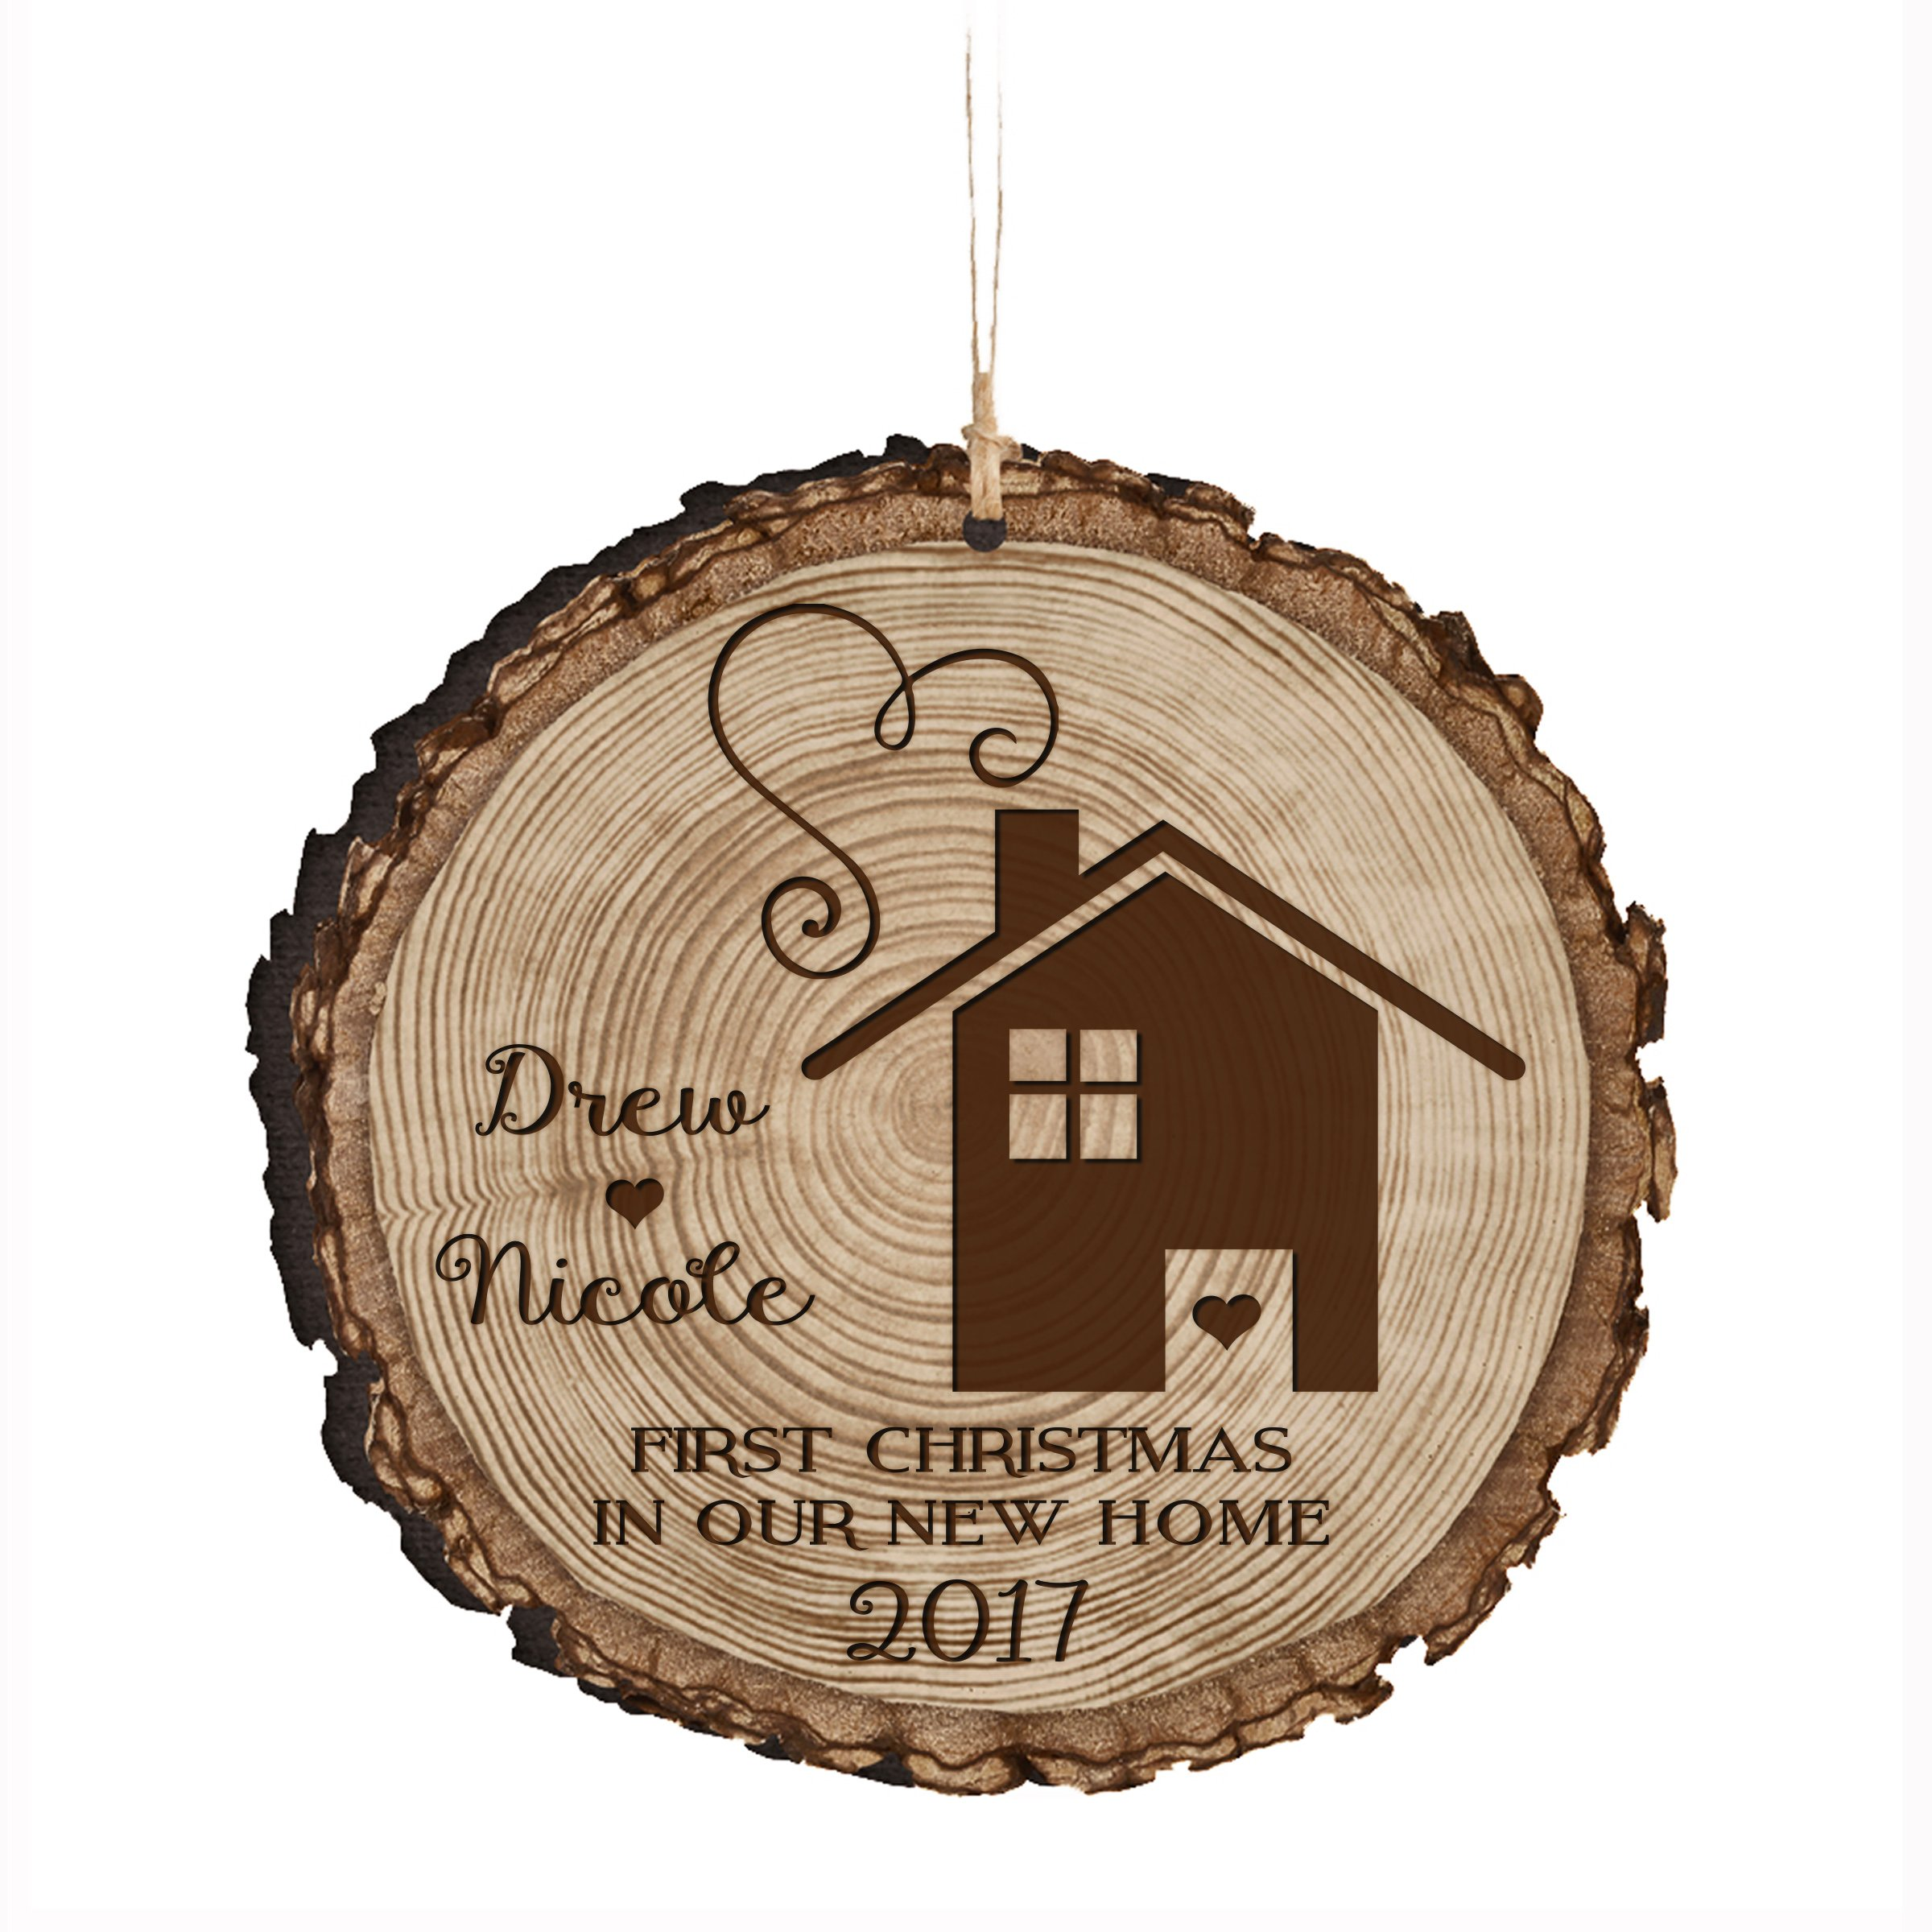 LifeSong Milestones Personalized Our First New Home Christmas Holiday Gift Ornament Custom Housewarming gift ideas for couple him her by (First Christmas in our Home)